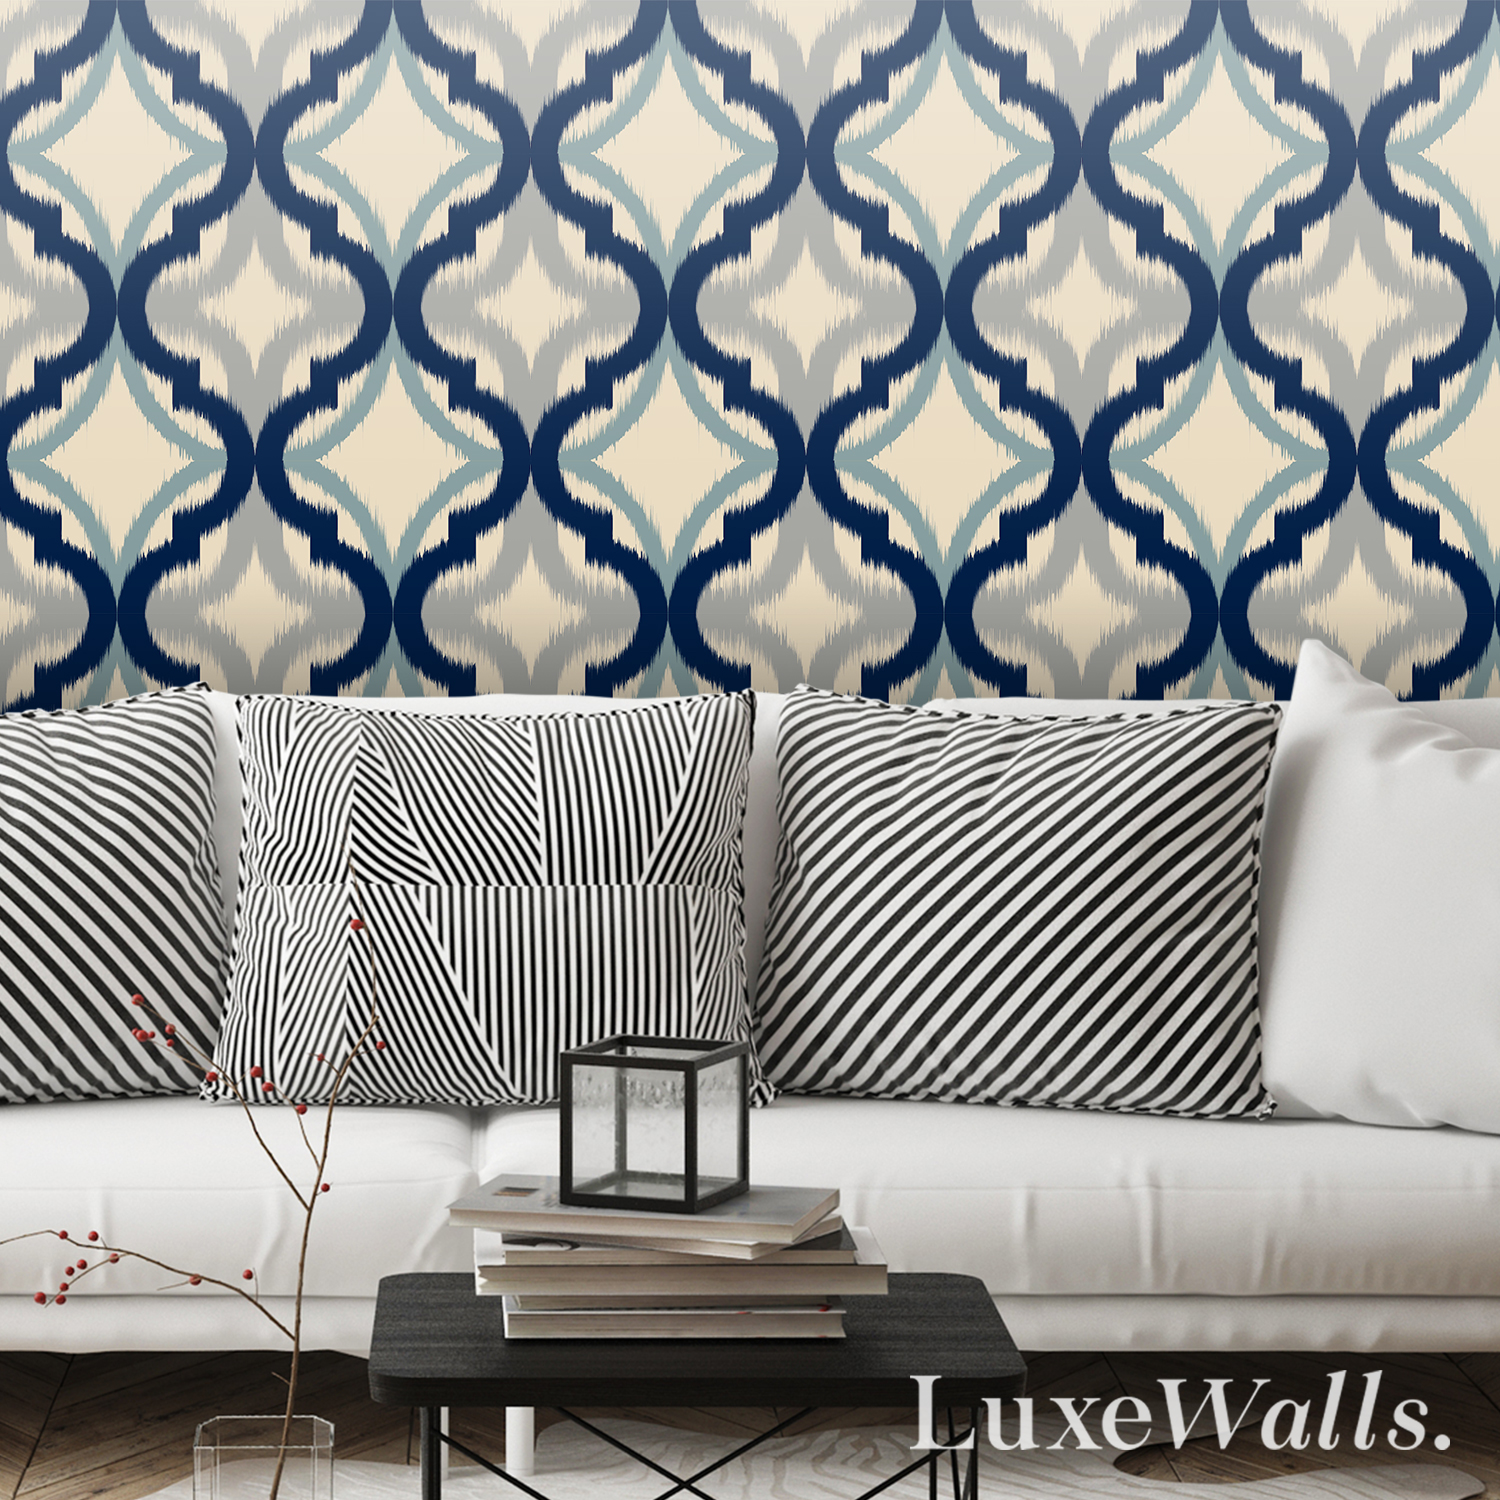 Whats New Whats Next Design Trends For 2018 Luxe Walls